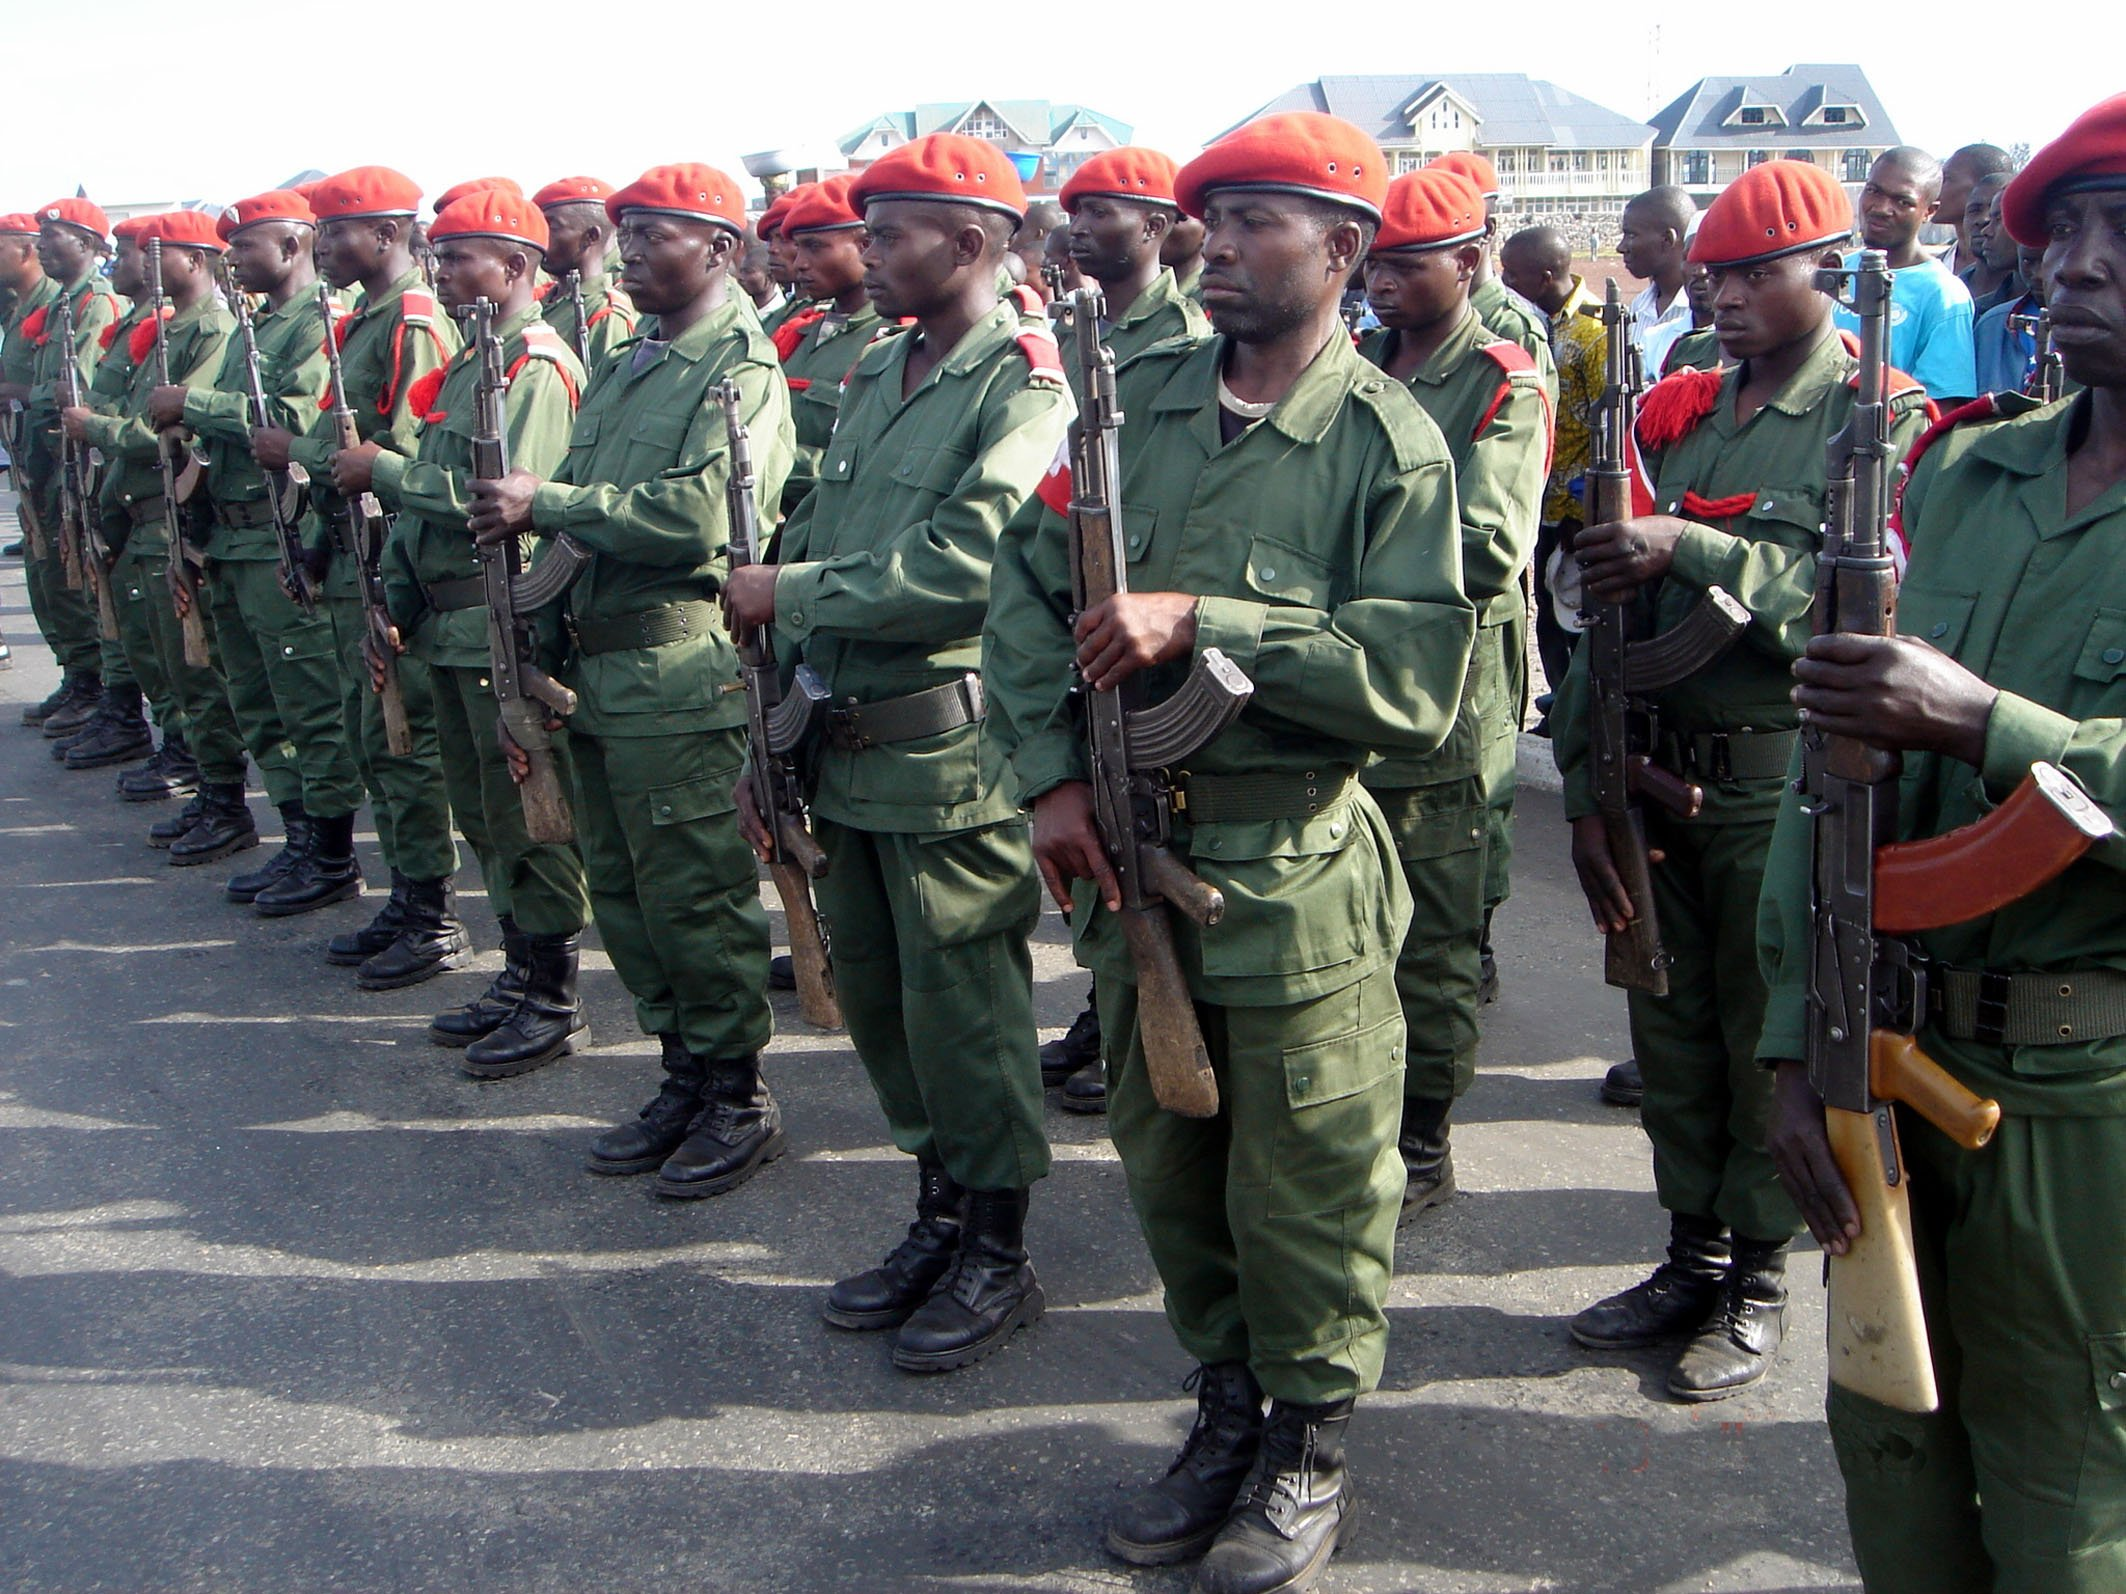 Former rebels and Mayi Mayi militiamen integrated in the national army of Democratic Republic of Congo on parade following an agreement signed in the eastern city of Goma by several armed groups to dissolve themselves on 18 April